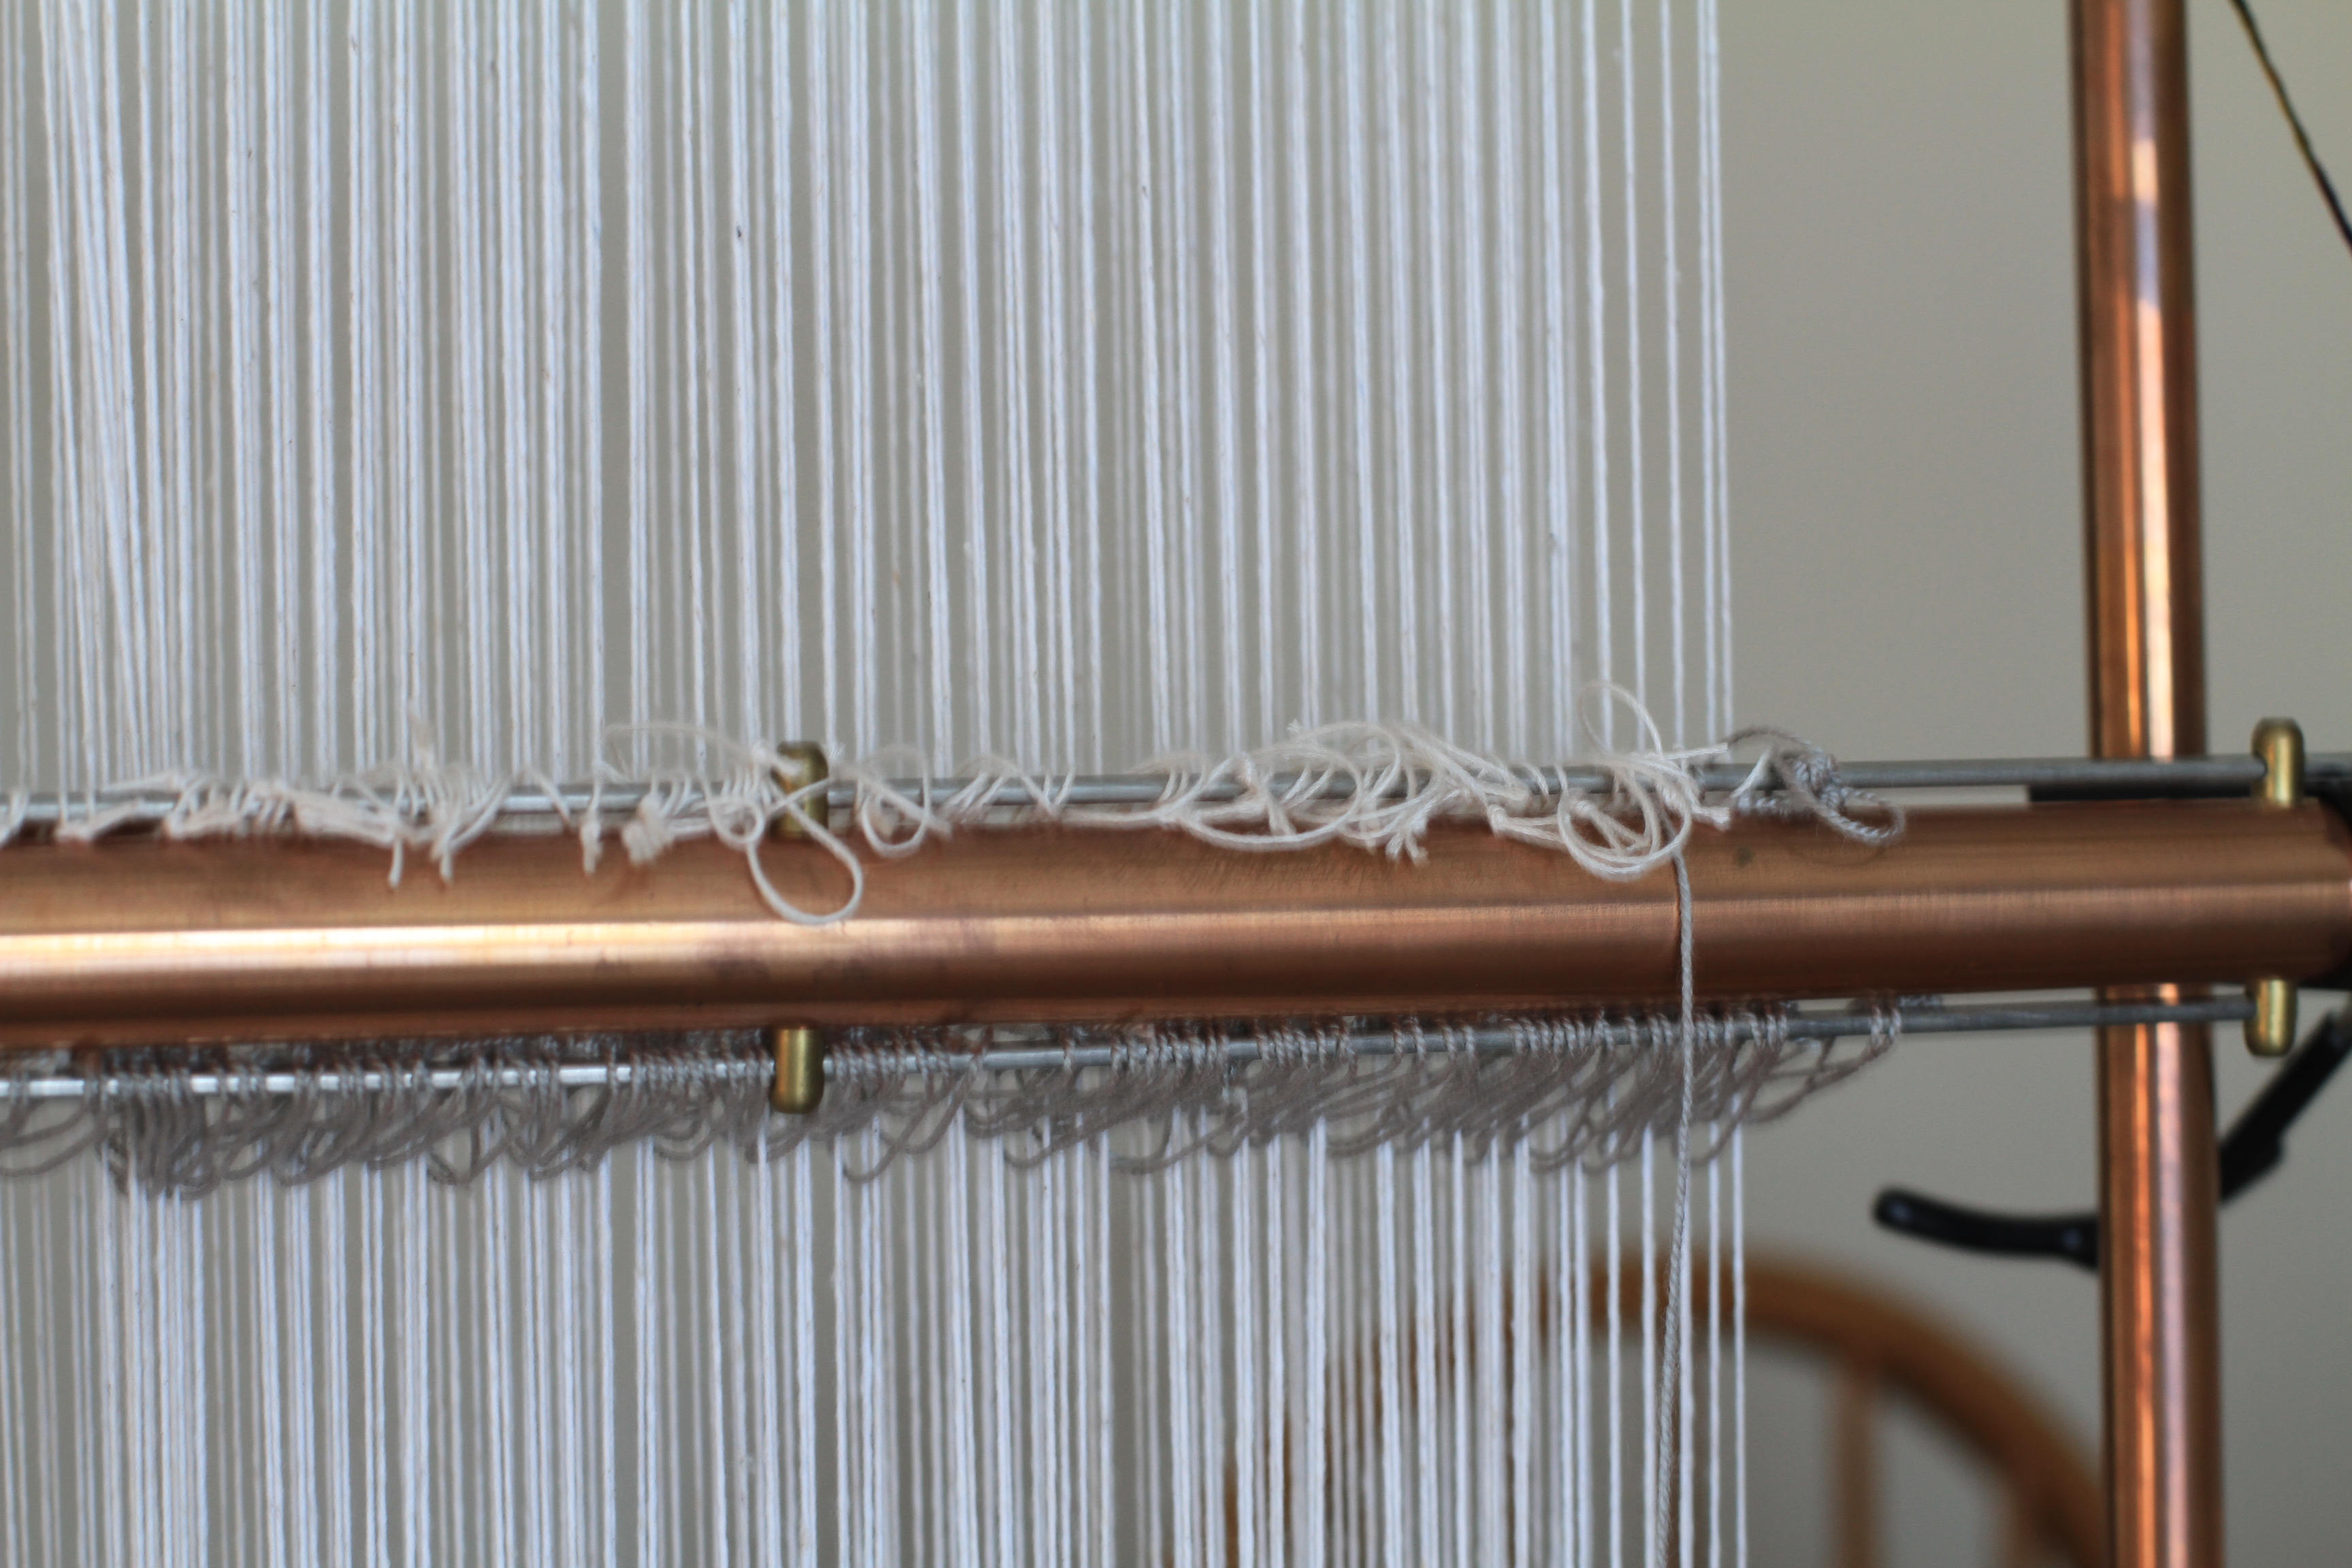 Adding Heddles to Tapestry Loom